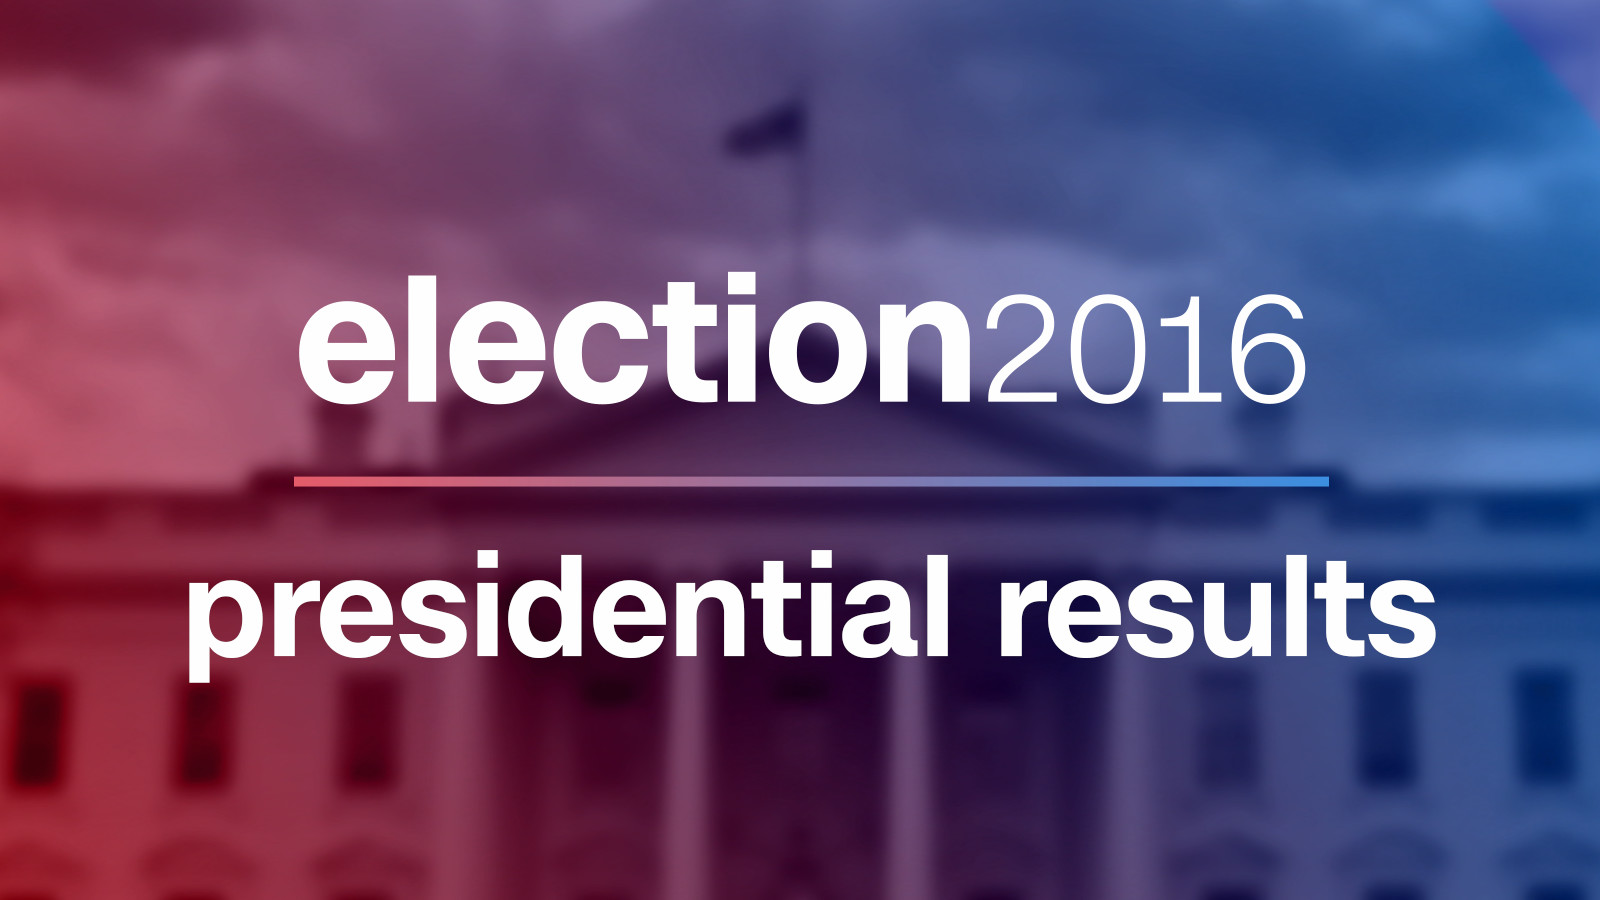 Presidential Election Results - Final us electoral map and vote count